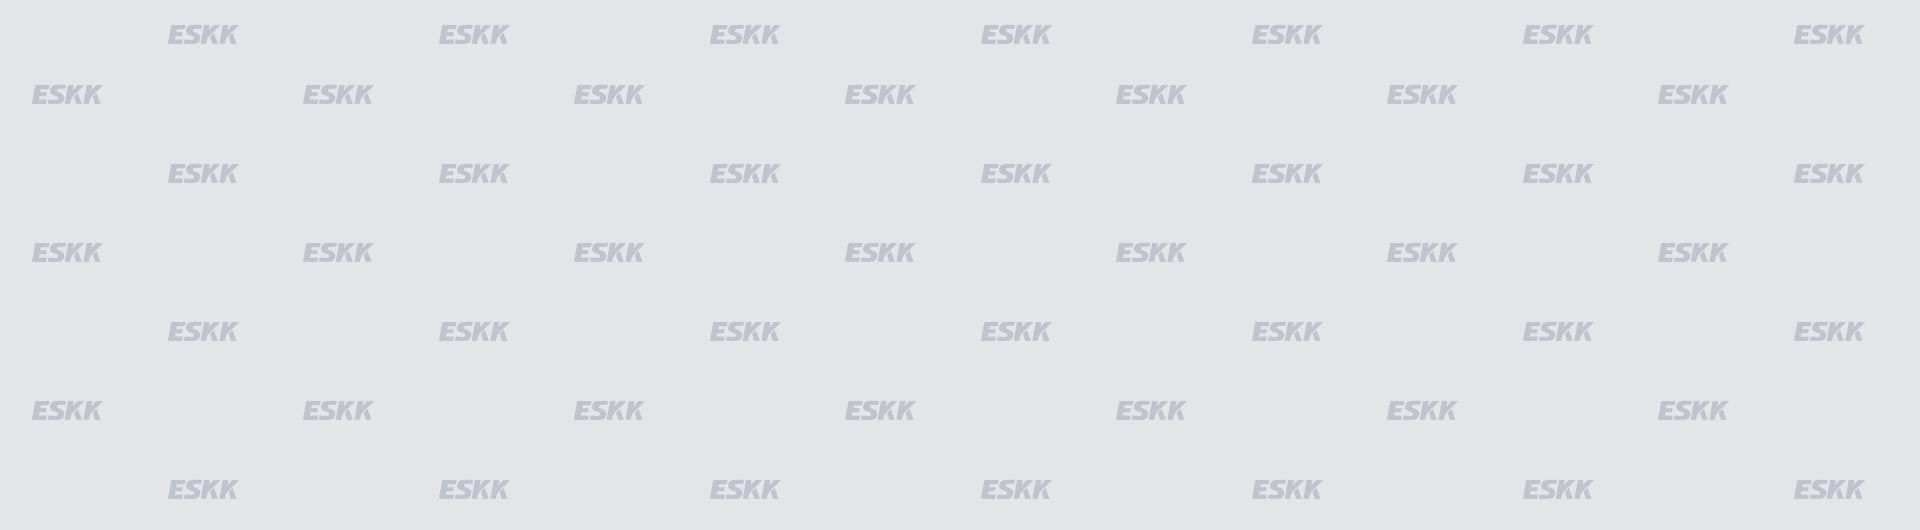 Test na inteligencję